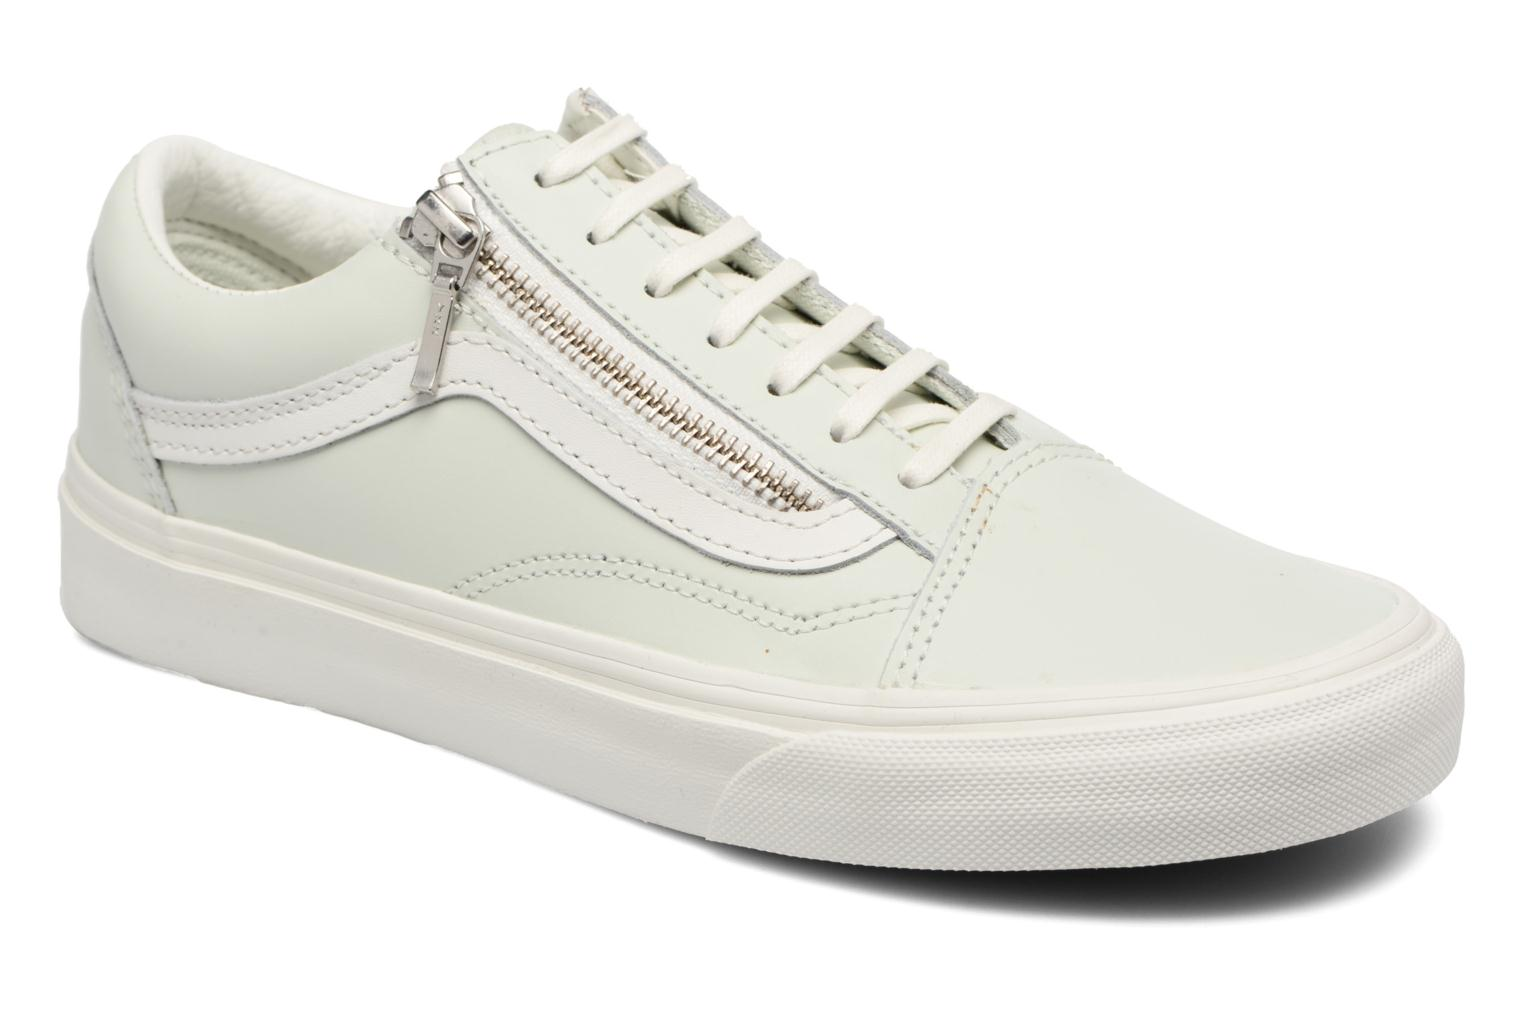 Old Skool Zip (Leather) Zephyr Blue/Blanc De Blanc